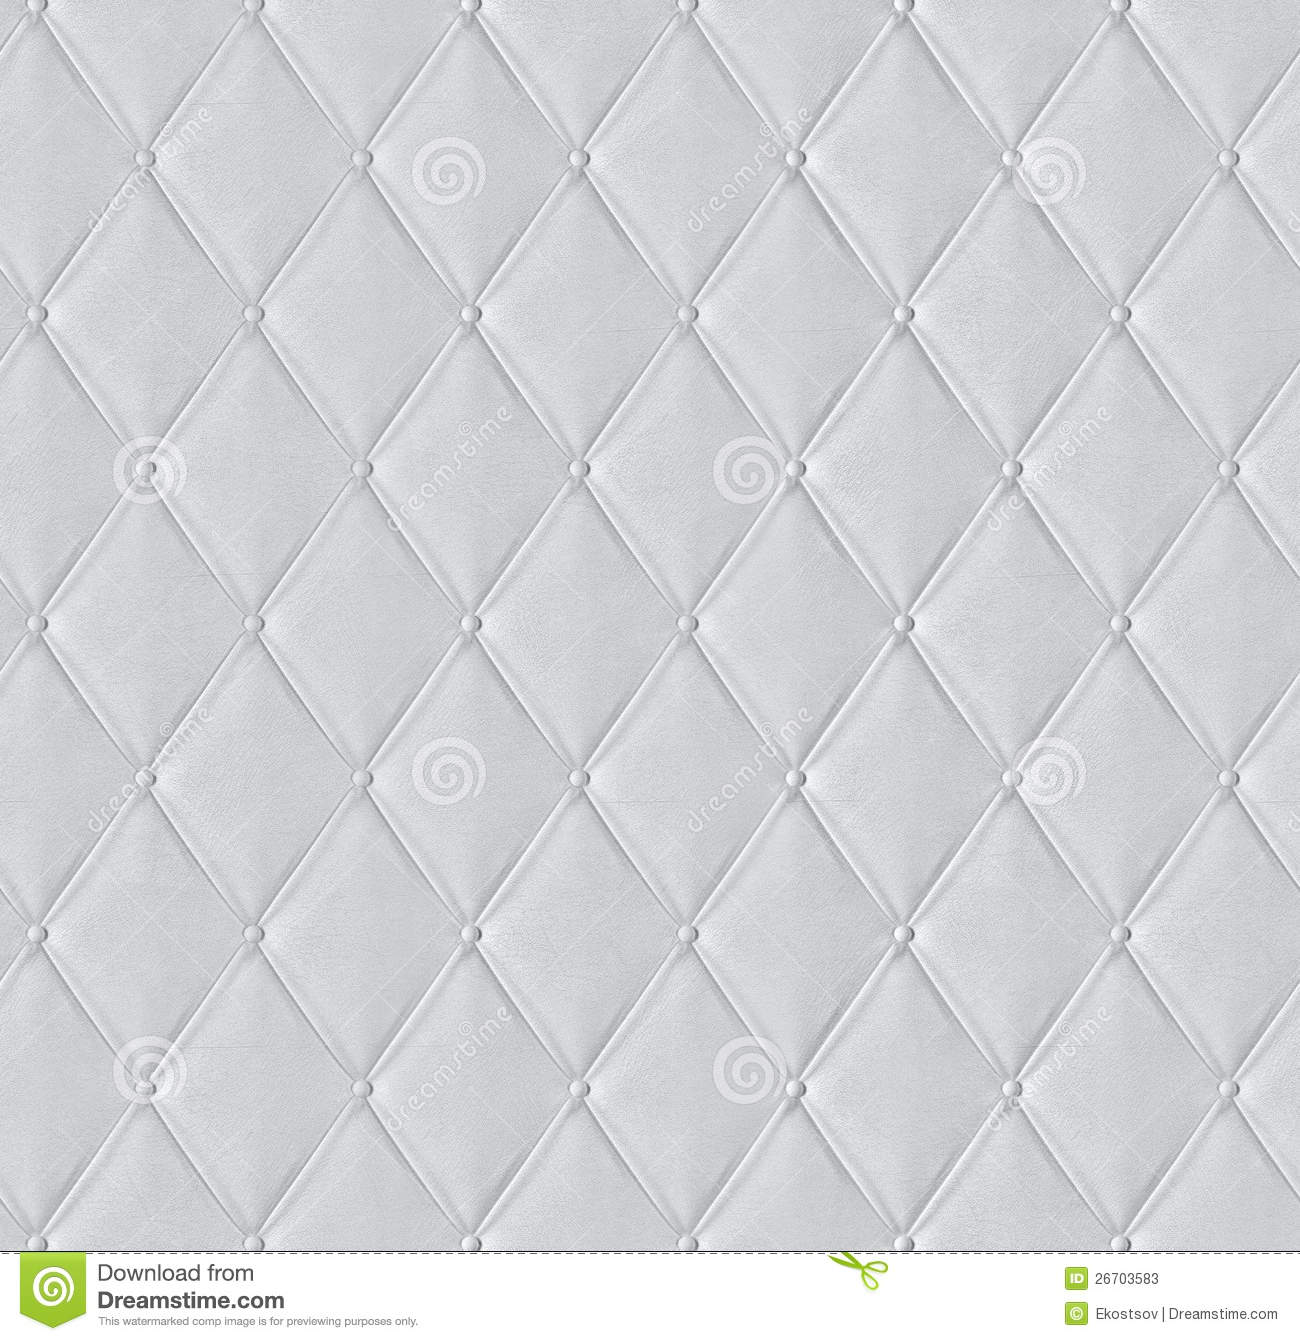 White Quilted Leather Tiled Texture Stock Photos - Image: 26703583